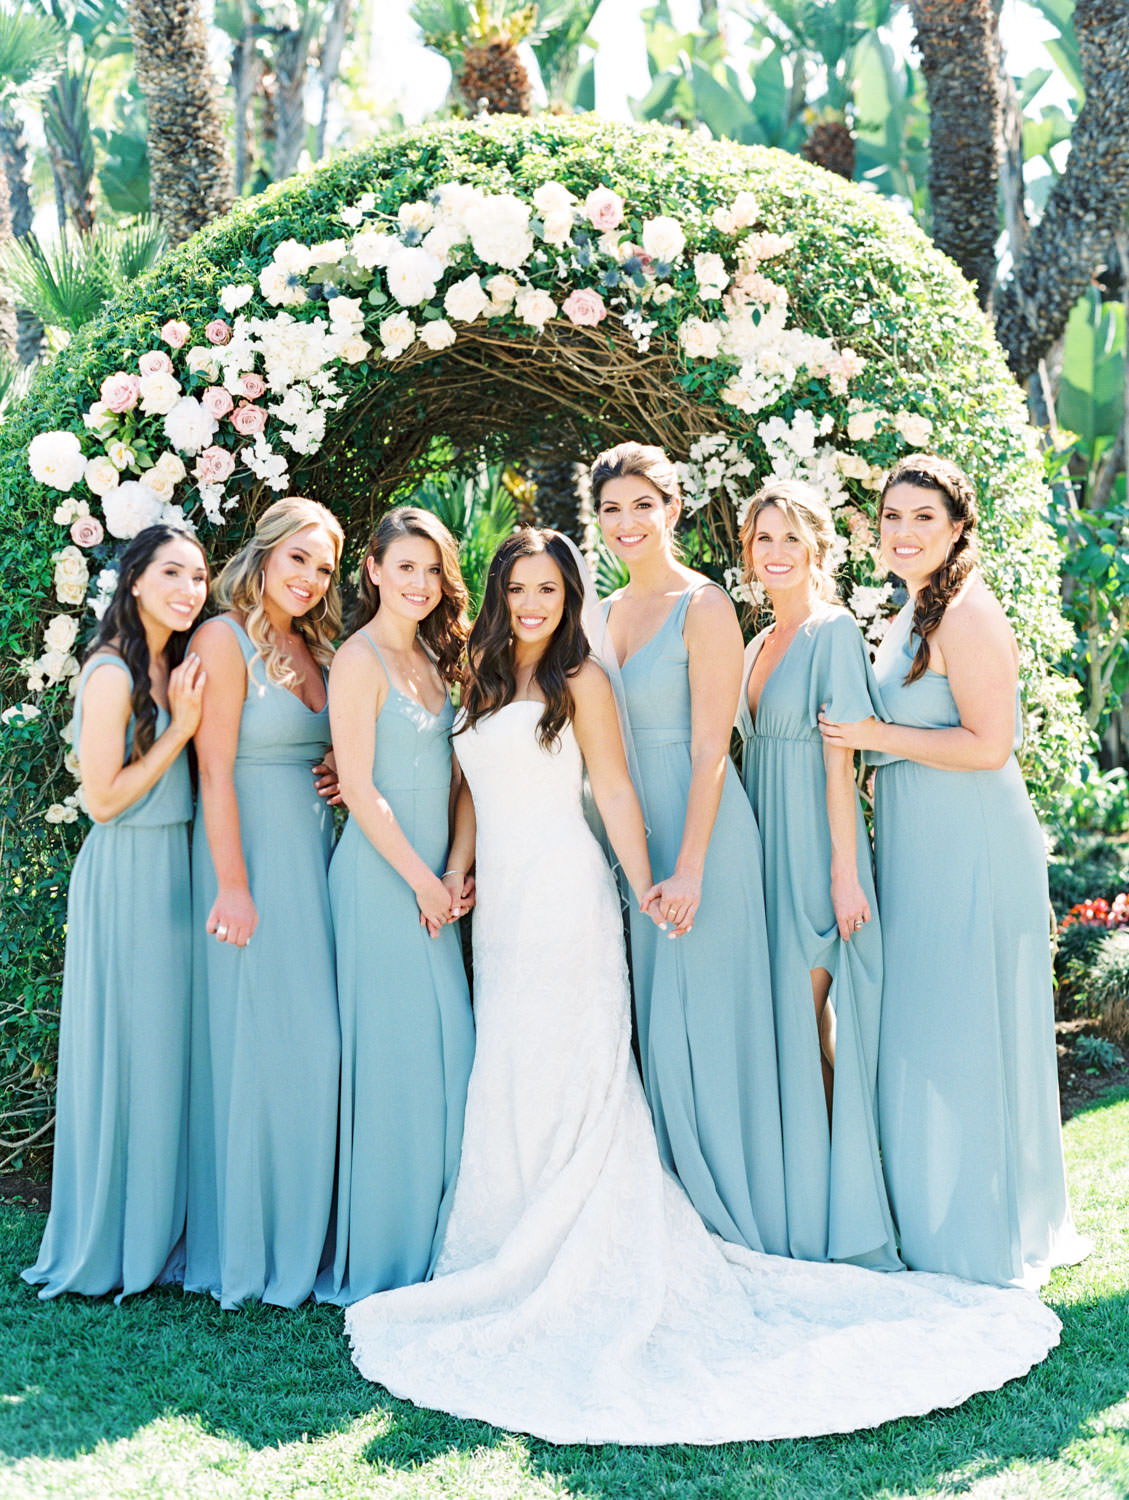 Bridesmaids in french blue dressed and bride in strapless lace gown. Bouquets with anemones, greenery, ivory, and blush flowers in a large floral arch captured on film. Wedding at Humphreys Half Moon Inn by Cavin Elizabeth Photography